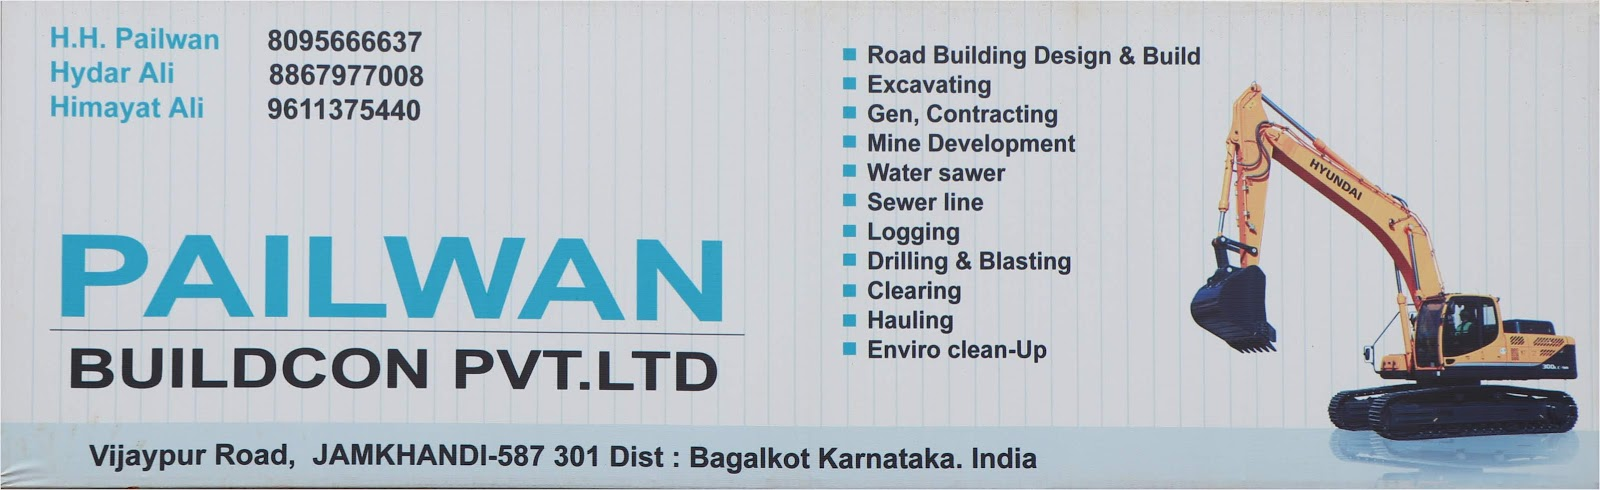 About Pailwan Buildcon Private Limited - Best Road Construction Company in Jamakhandi Bagalkot Karnataka,Best Road Contractor in Jamakhandi Bagalkot Karnataka,Best Building Contractors in Jamakhandi Bagalkot Karnataka,Best Civil Contractors in Jamakhandi Bagalkot Karnataka,Best Contractors in Jamakhandi Bagalkot Karnataka,Best Excavating Service Company in Jamakhandi bagalkot Karnataka,Best General Contracting Company in Jamakhandi bagalkot Karnataka,Best Mine Development Company in Jamakhandi Bagalkot Karnataka,Best Water Lines Construction Company in Jamakhandi Bagalkot Karnataka,Best Sewer Lines Construction Company in Jamakhandi Bagalkot Karnataka,Best Logging Service Company in Jamakhandi Bagalkot Karnataka,Best Logging Service Company in Jamakhandi Bagalkot Karnataka,Best Drilling and Blasting Service Company in Jamakhandi Bagalkot Karnataka,Best Clearing and Hauling Service Company in Jamakhandi Bagalkot Karnataka,Best Envirocleanup  Service Company in Jamakhandi Bagalkot Karnataka, contractors in Karnataka, road contractors in Karnataka, civil contractors in Karnataka, civil contractors in bagalkot, civil contractors in jamakhandi, civil contractors in athani, civil contractors in near me, road construction contractors in Karnataka, road construction contractors in jamakhandi, road construction contractors in bahalkot, road construction contractors in bijapur, road construction contractors in athani, top contractors in Karnataka, top contractors in jamakhandi, top contractors in bagalkot, top contractors in athani, top civil contractors in jamakhandi, top civil contractors in belagavi, top civil contractors in athani,  water supply contractors in Karnataka, water supply contractors in jamakhandi,  water supply contractors in bagalkot, waterproofing contractors in jamakhandi, waterproofing contractors in Karnataka, waterproofing contractors, road building materials, road building equipments, road building equipments for rent, road building equipments in jamakhandi, road building bagalkot, road building excavator, general contractors, mine development, excavating in jamakhandi,